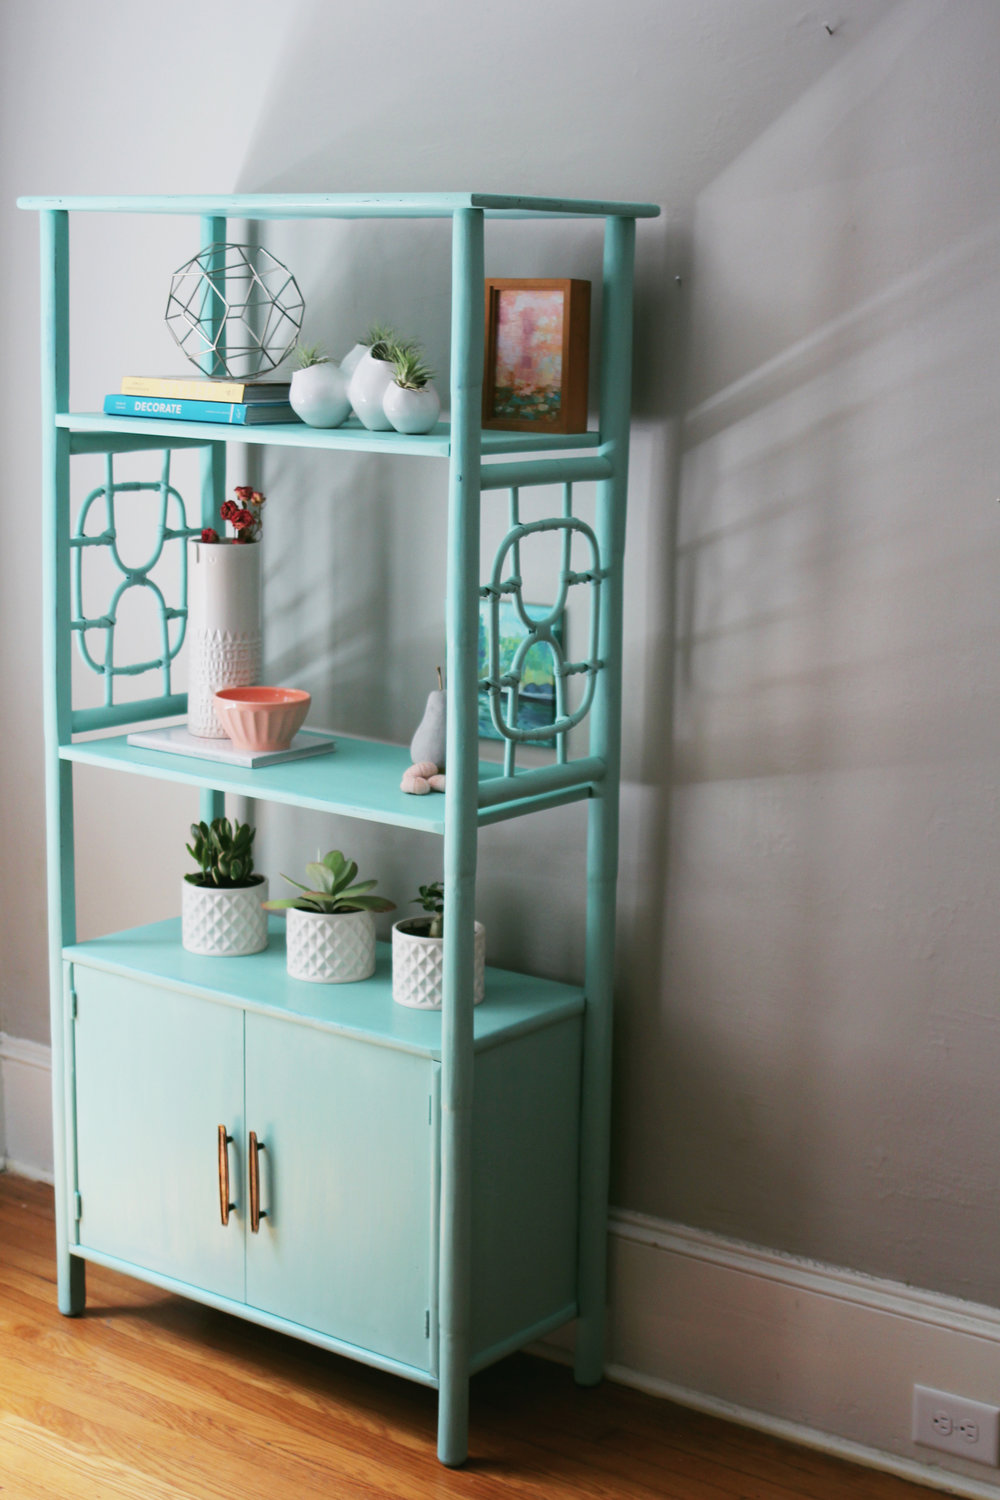 jo-torrijos-a-simpler-design-atlanta-painted-furniture-annie-sloan-mint-green-bookcase-mid-century-7.jpg